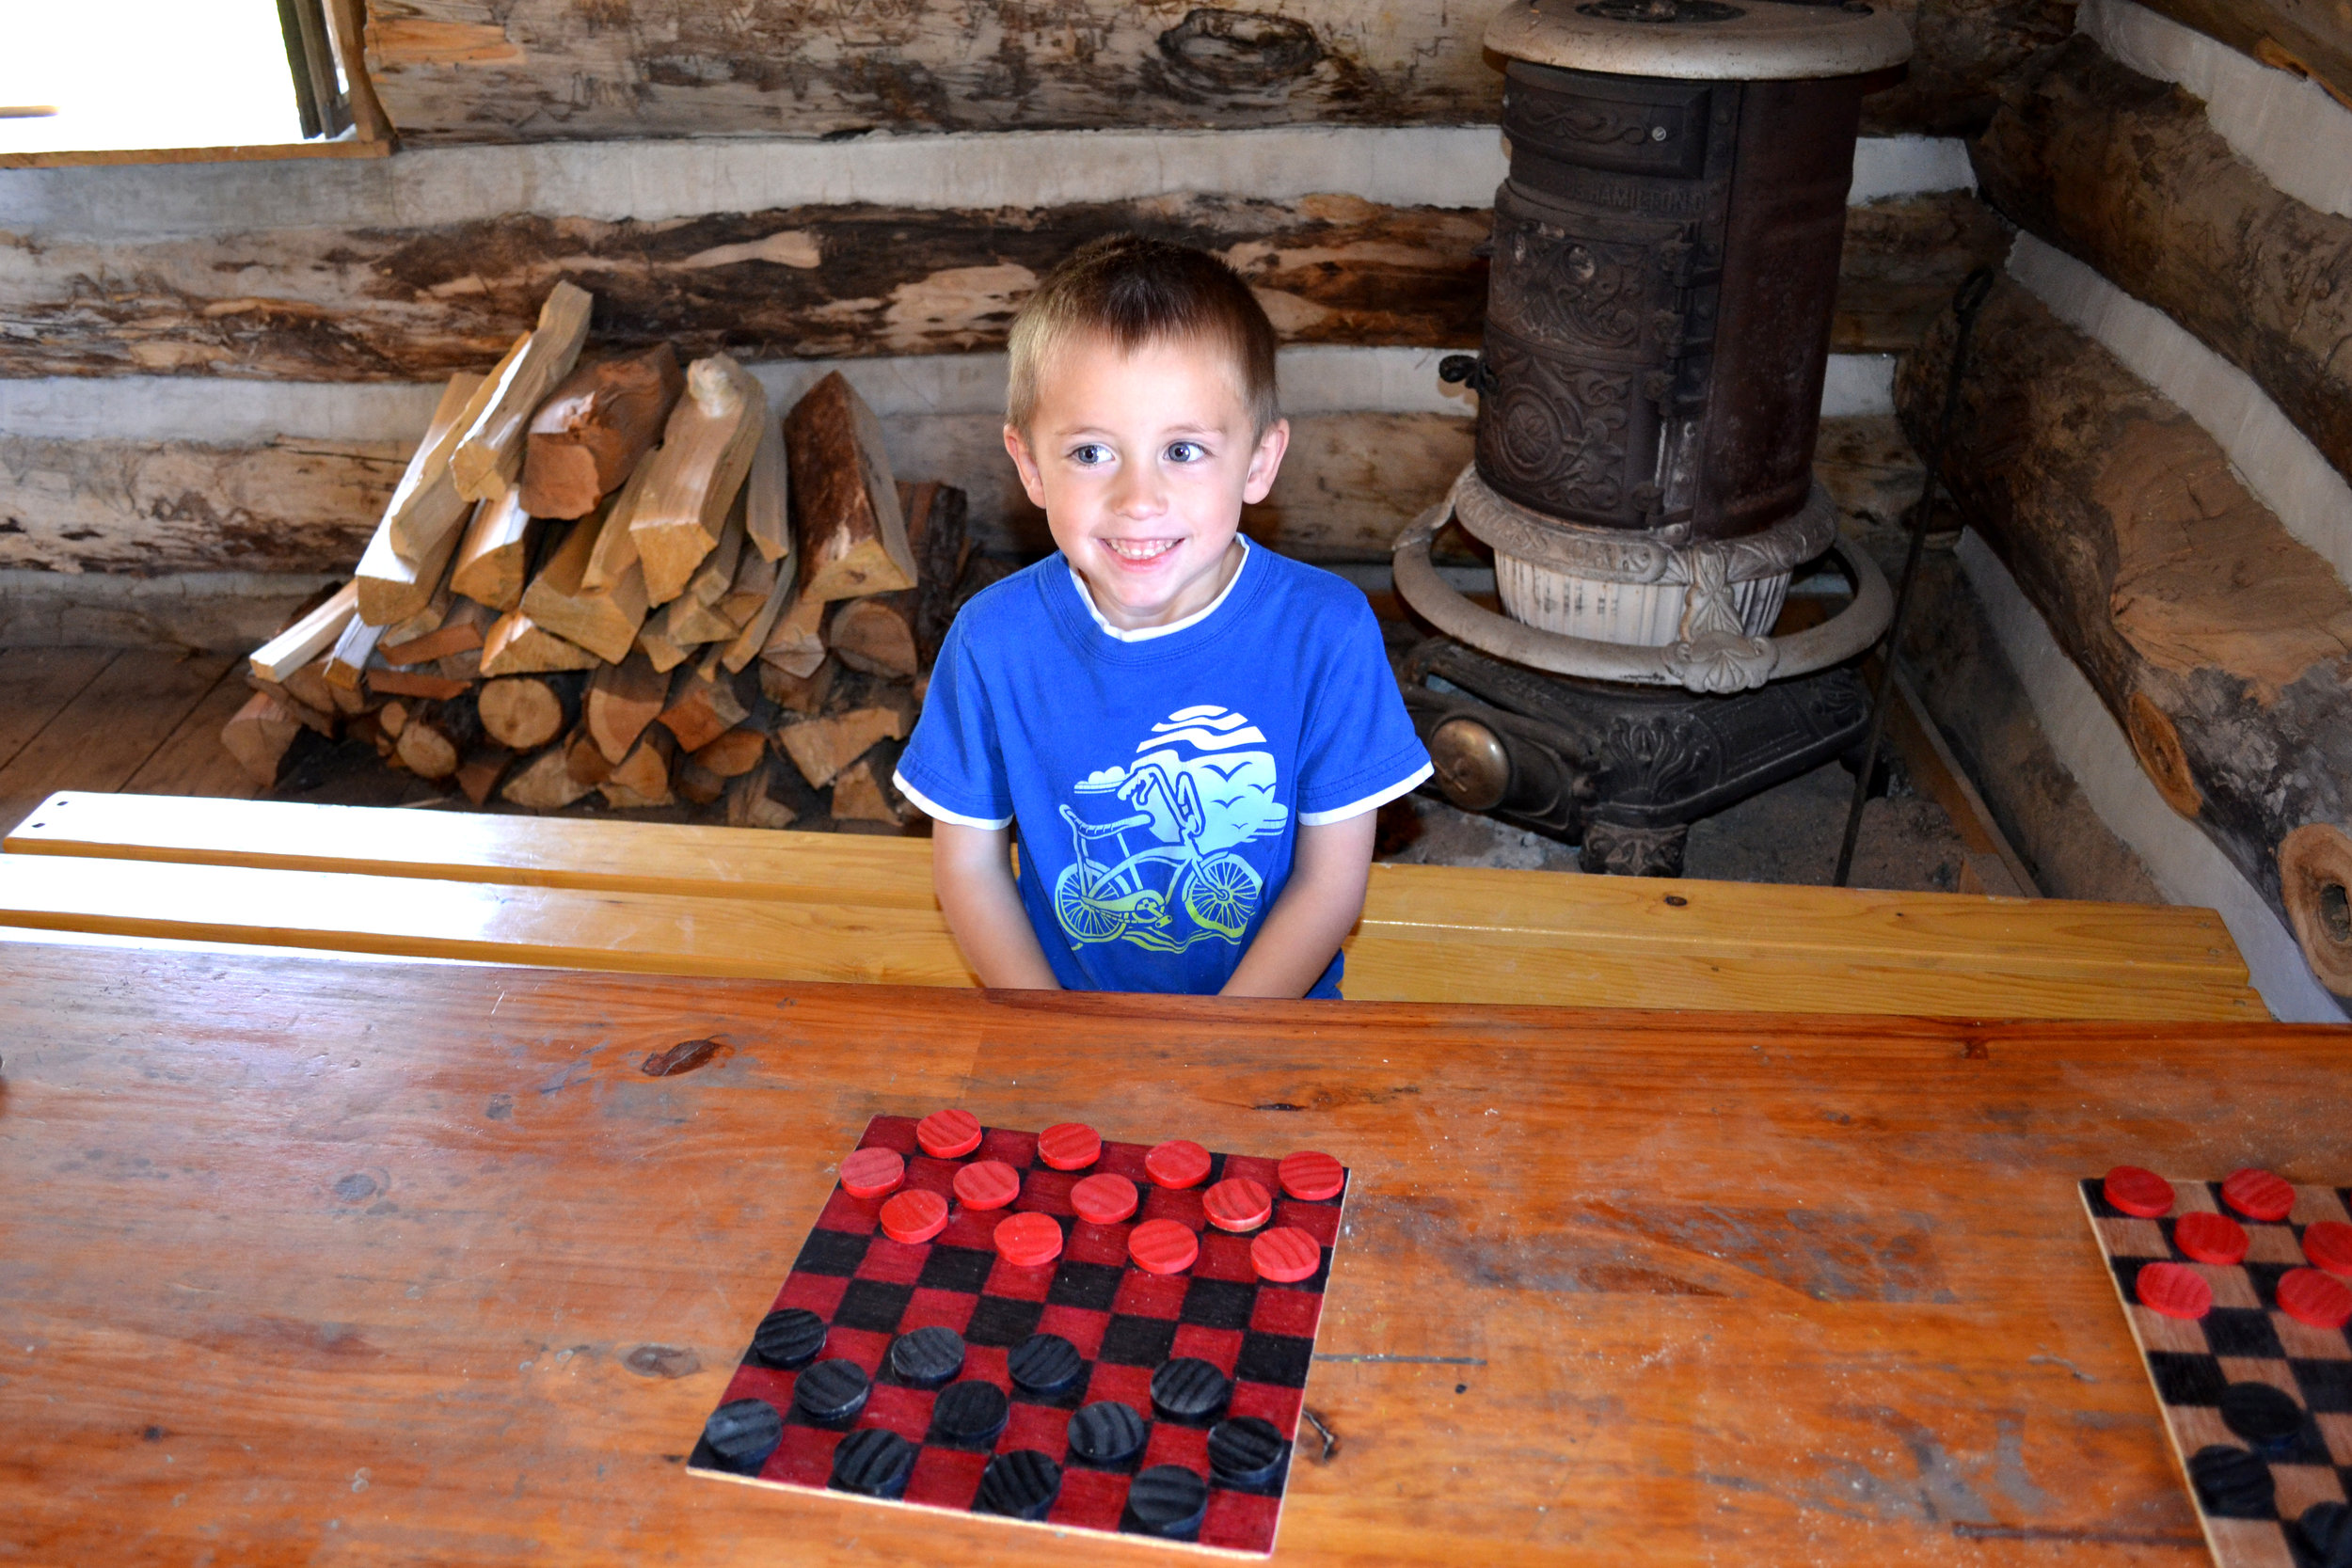 Ready for a checkers match?